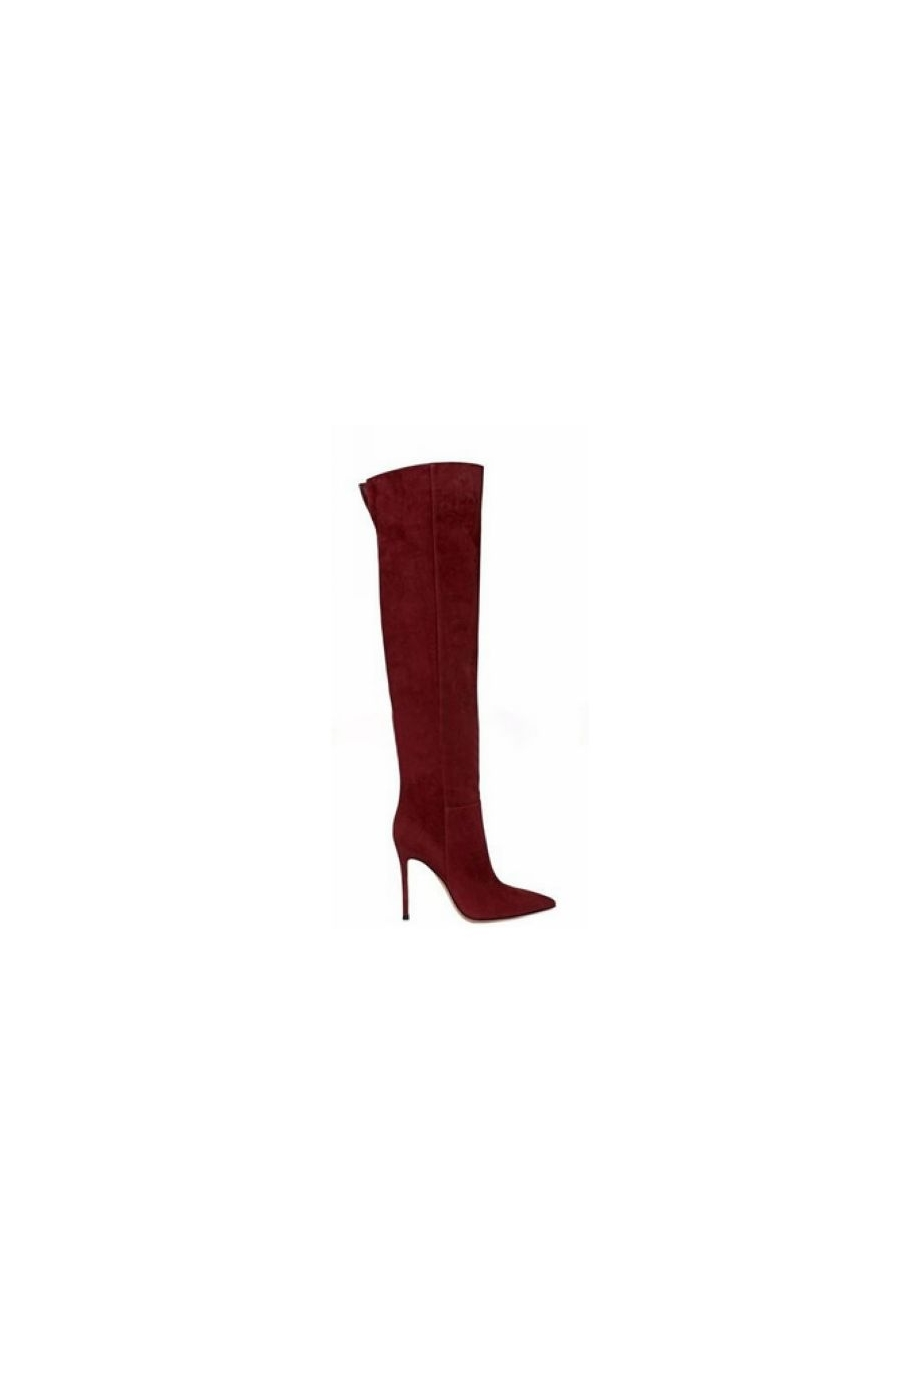 cab8571e29e PENNEY Back Opening Over The Knee High Heel Boots - 10.5cm ...